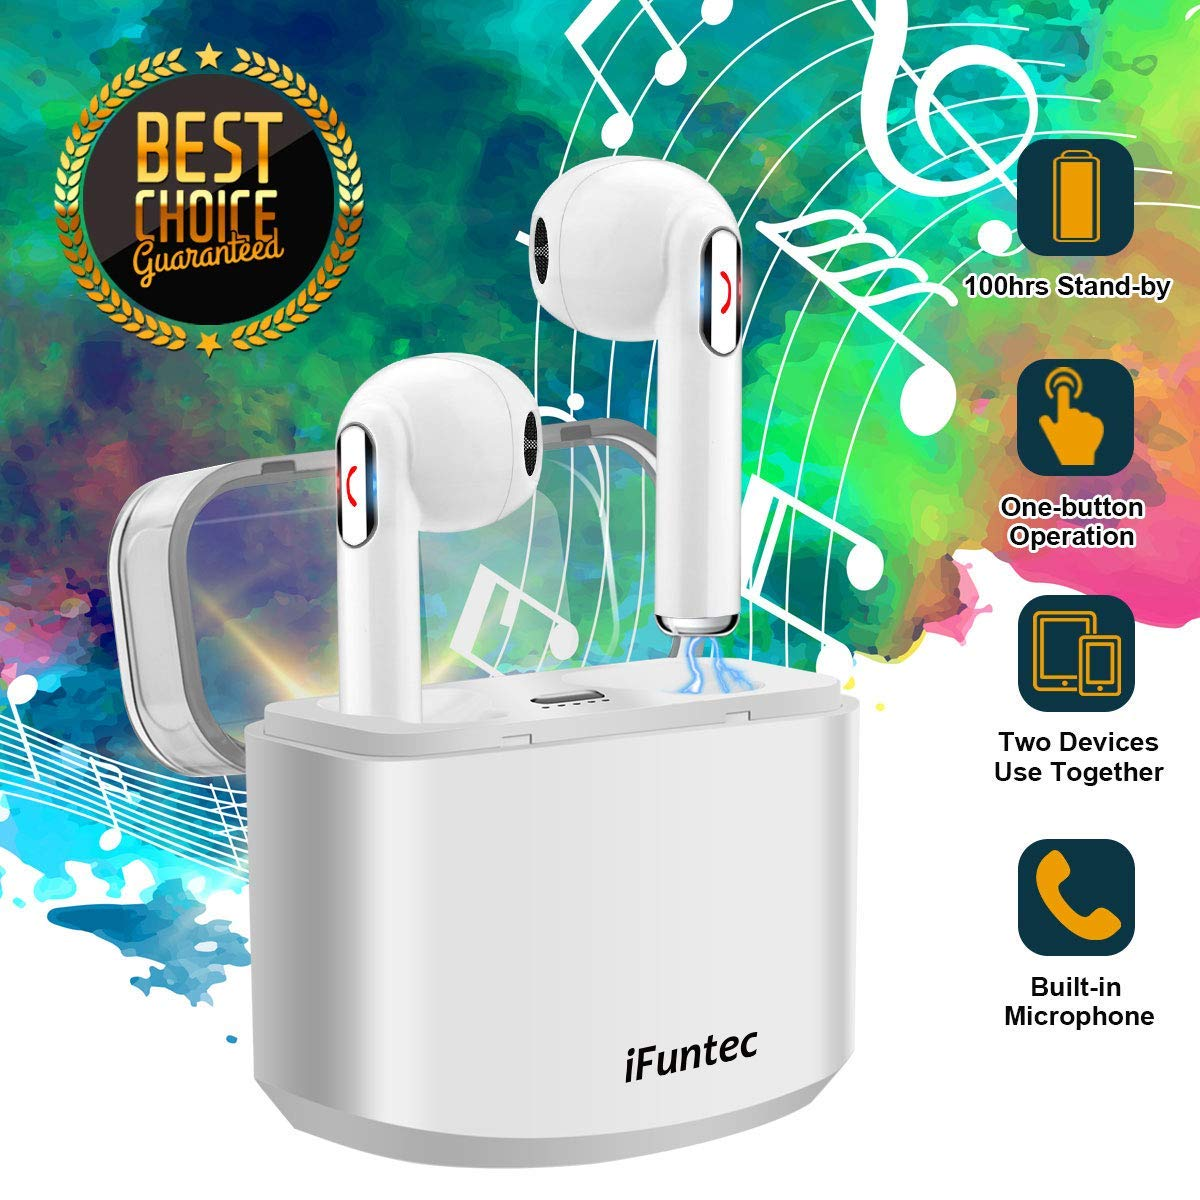 Wireless Earbuds, iFuntec Bluetooth Headphones with Mic Compact In-Ear Headphones Mini Cordless Earphones Stereo Wireless Earbuds with Charging Case Ear buds for iPhone X 8 Plus 7 6 IOS Android White